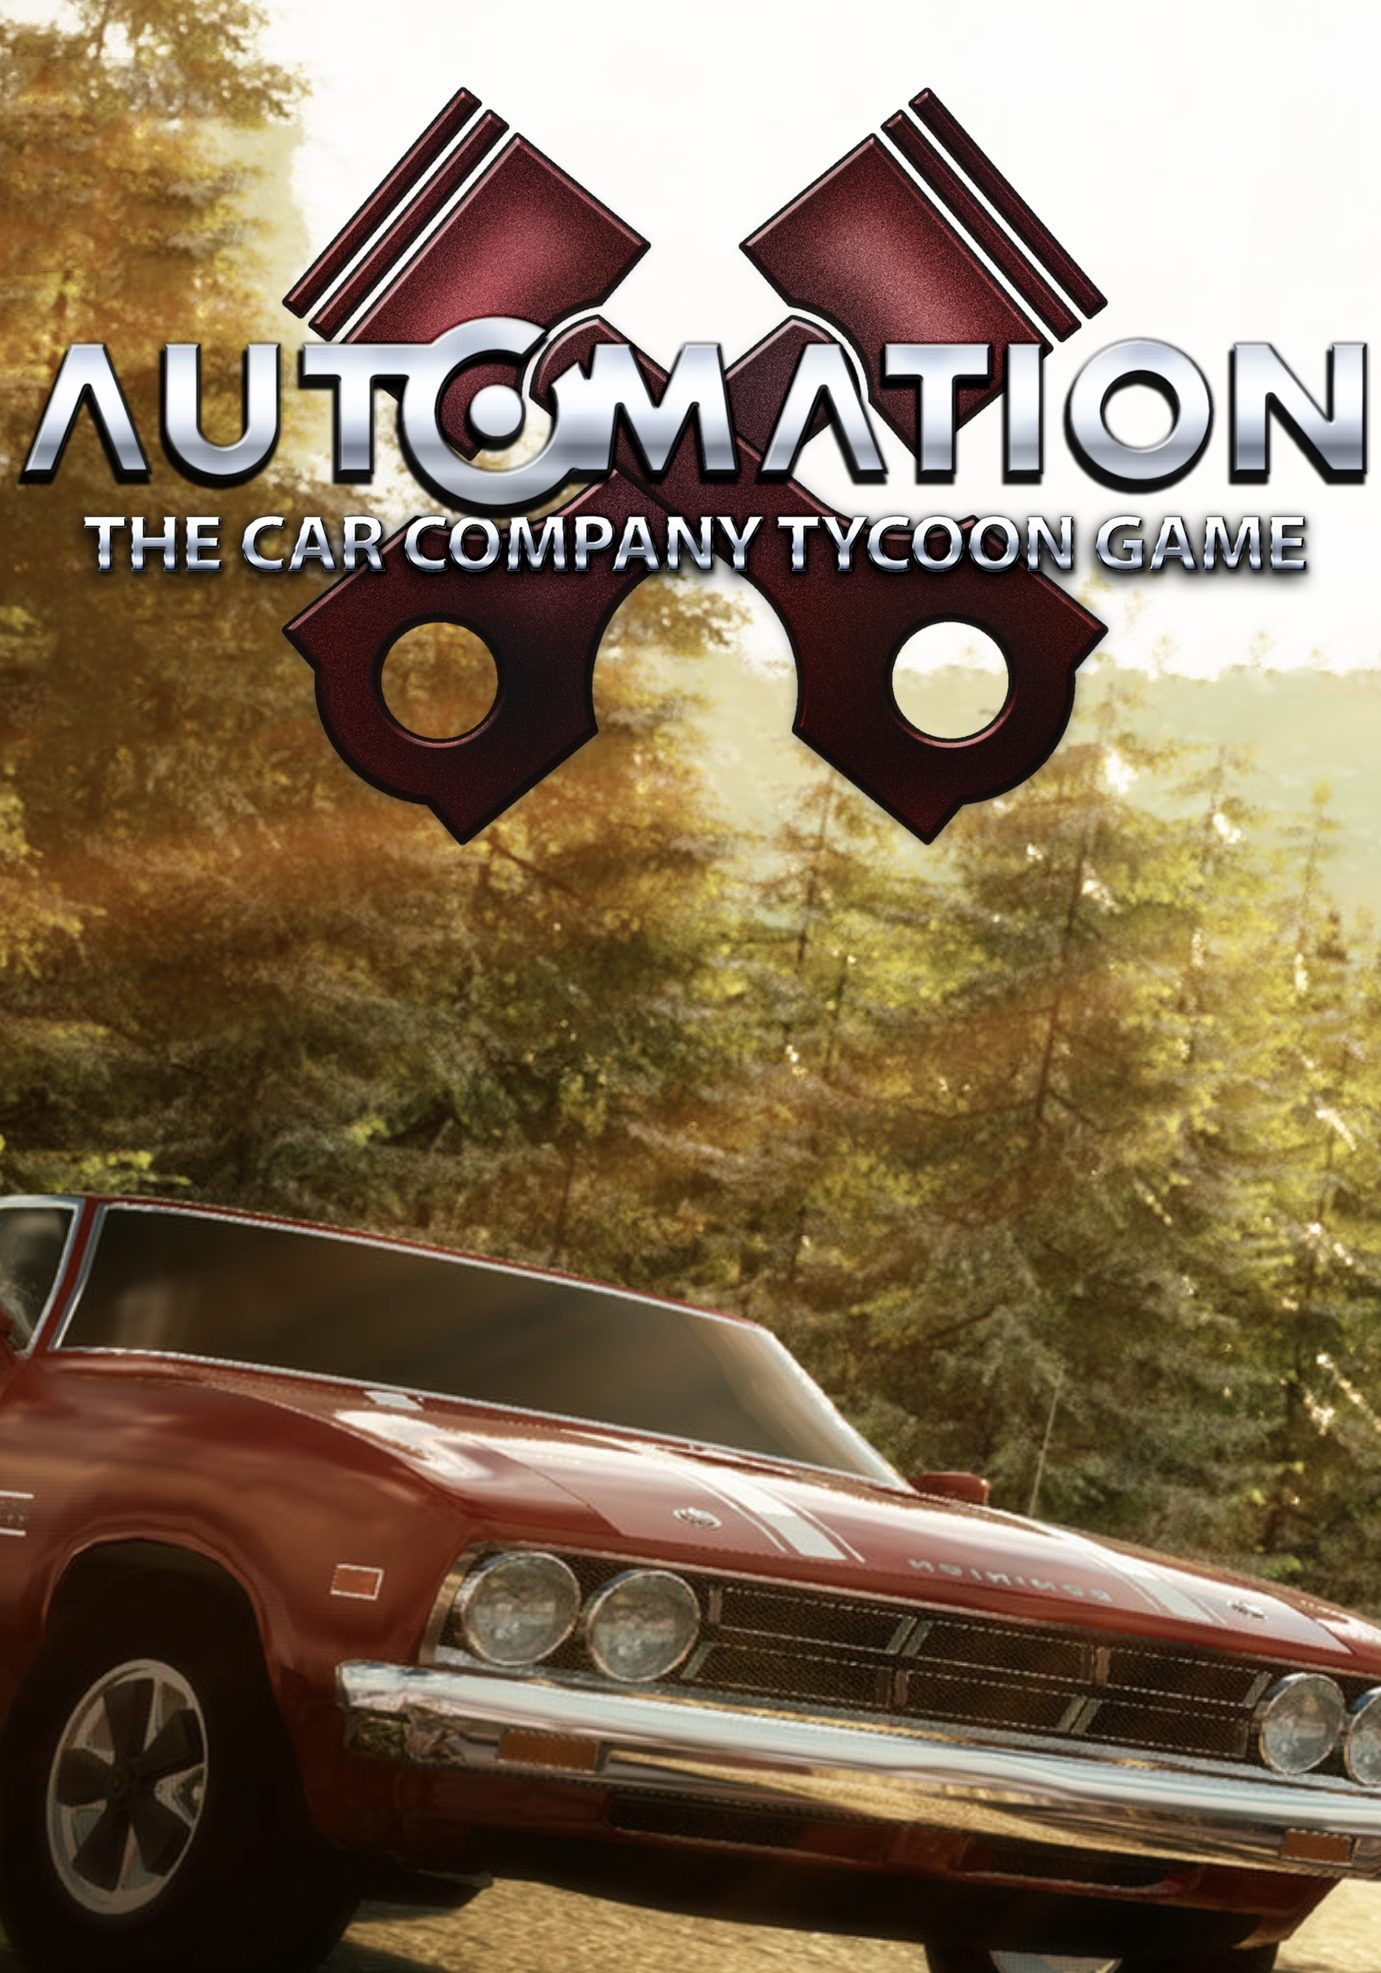 automation-the-car-company-tycoon-game-cover-7583973